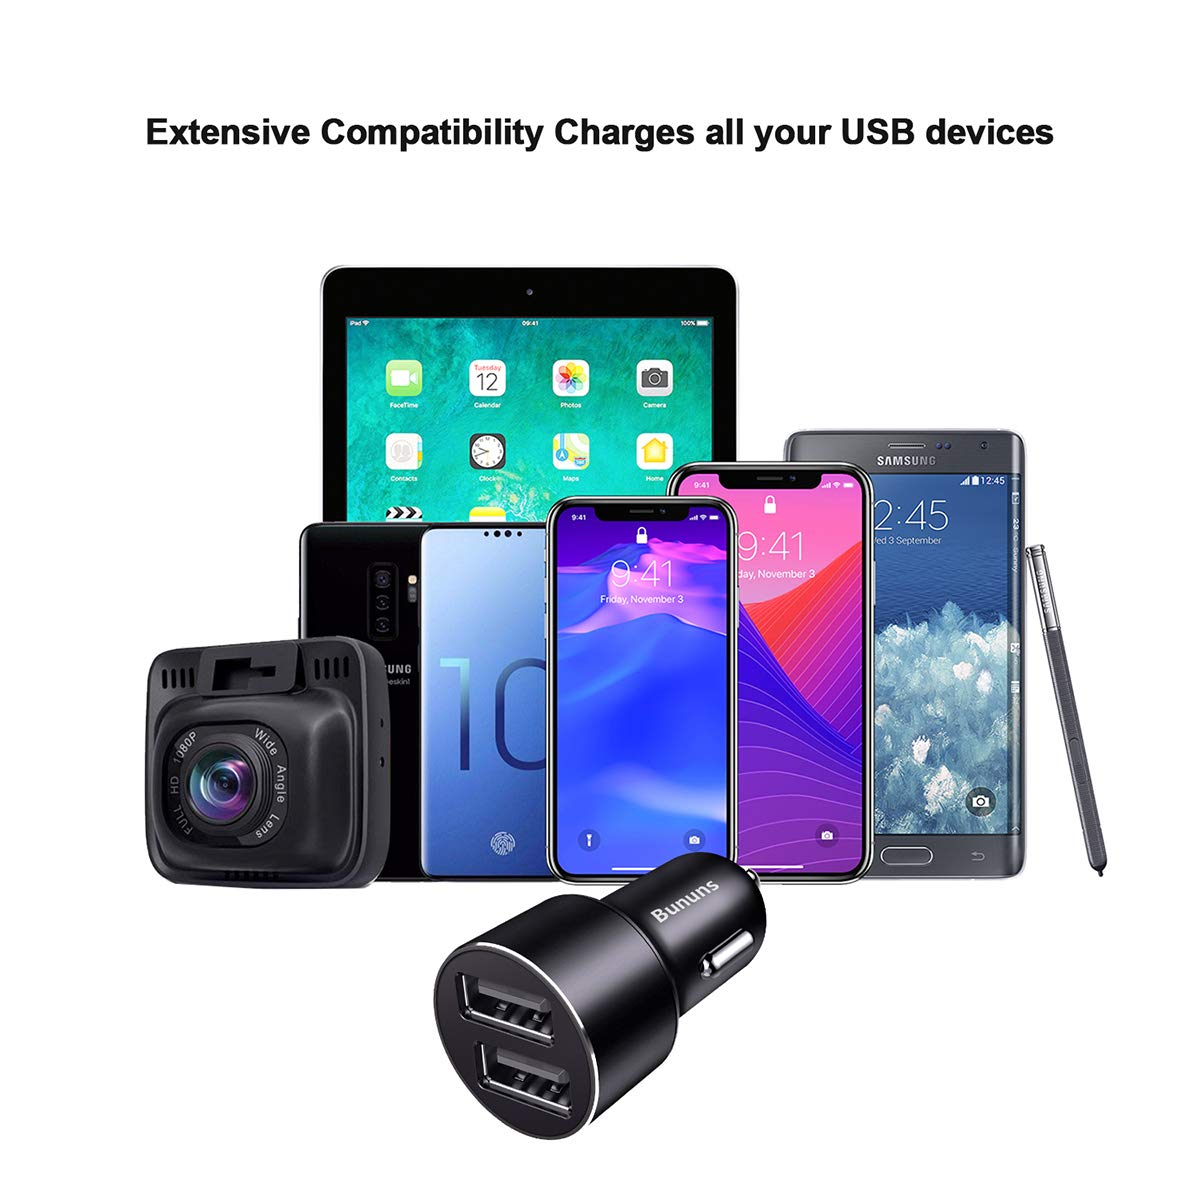 Dual Car Adapter for Quick Charging Bununs Dual Port USB Car Charger for Apple /& Android Devices 2 Pack Fast Car Charging Mini Flush Fit for iPhone iPad Galaxy Note